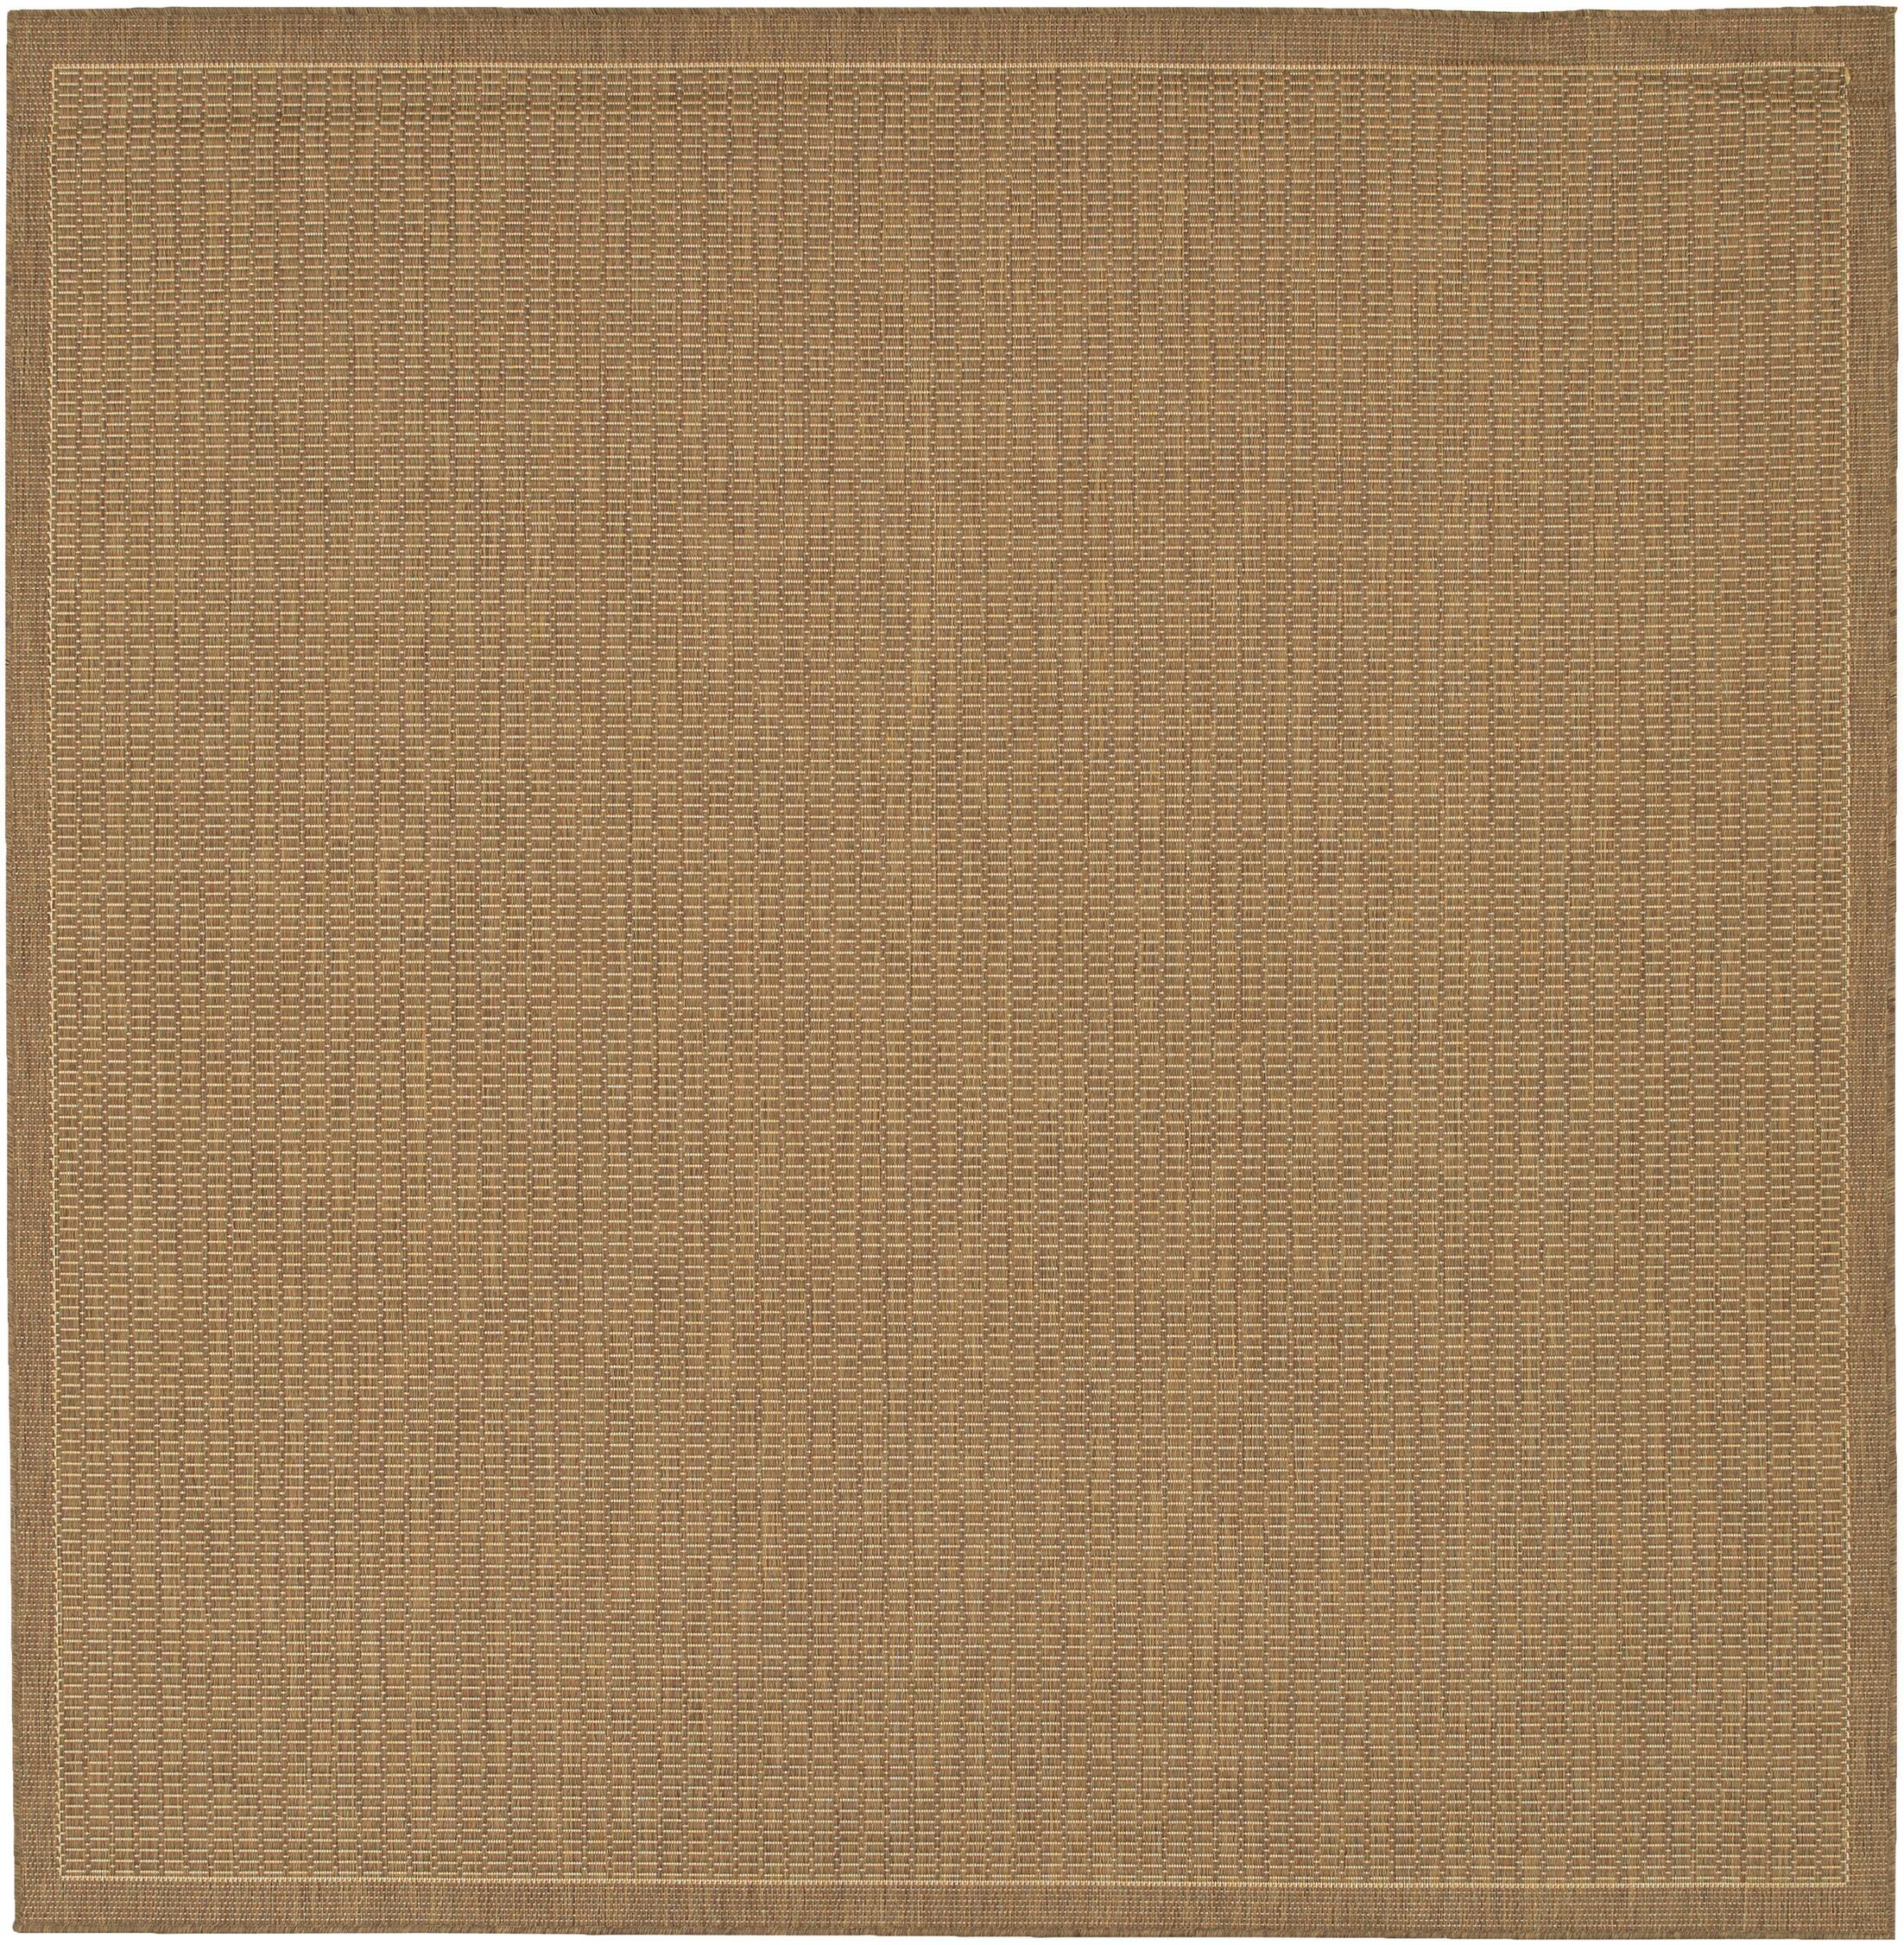 Westlund Saddle Stitch Cocoa Indoor/Outdoor Area Rug Rug Size: Square 8'6